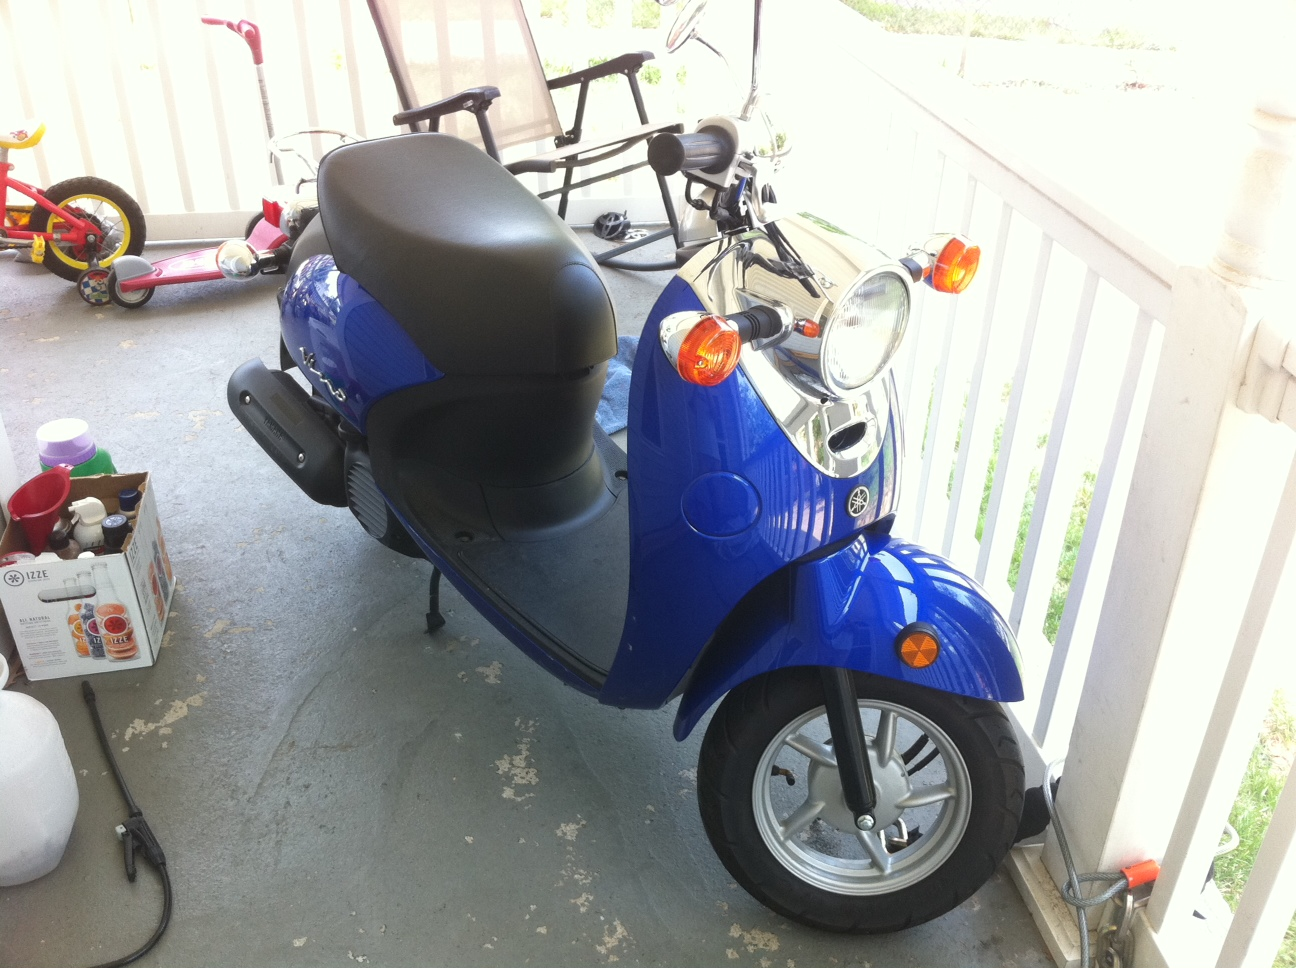 superior craigslist moped scooters #5: $500! Winning.